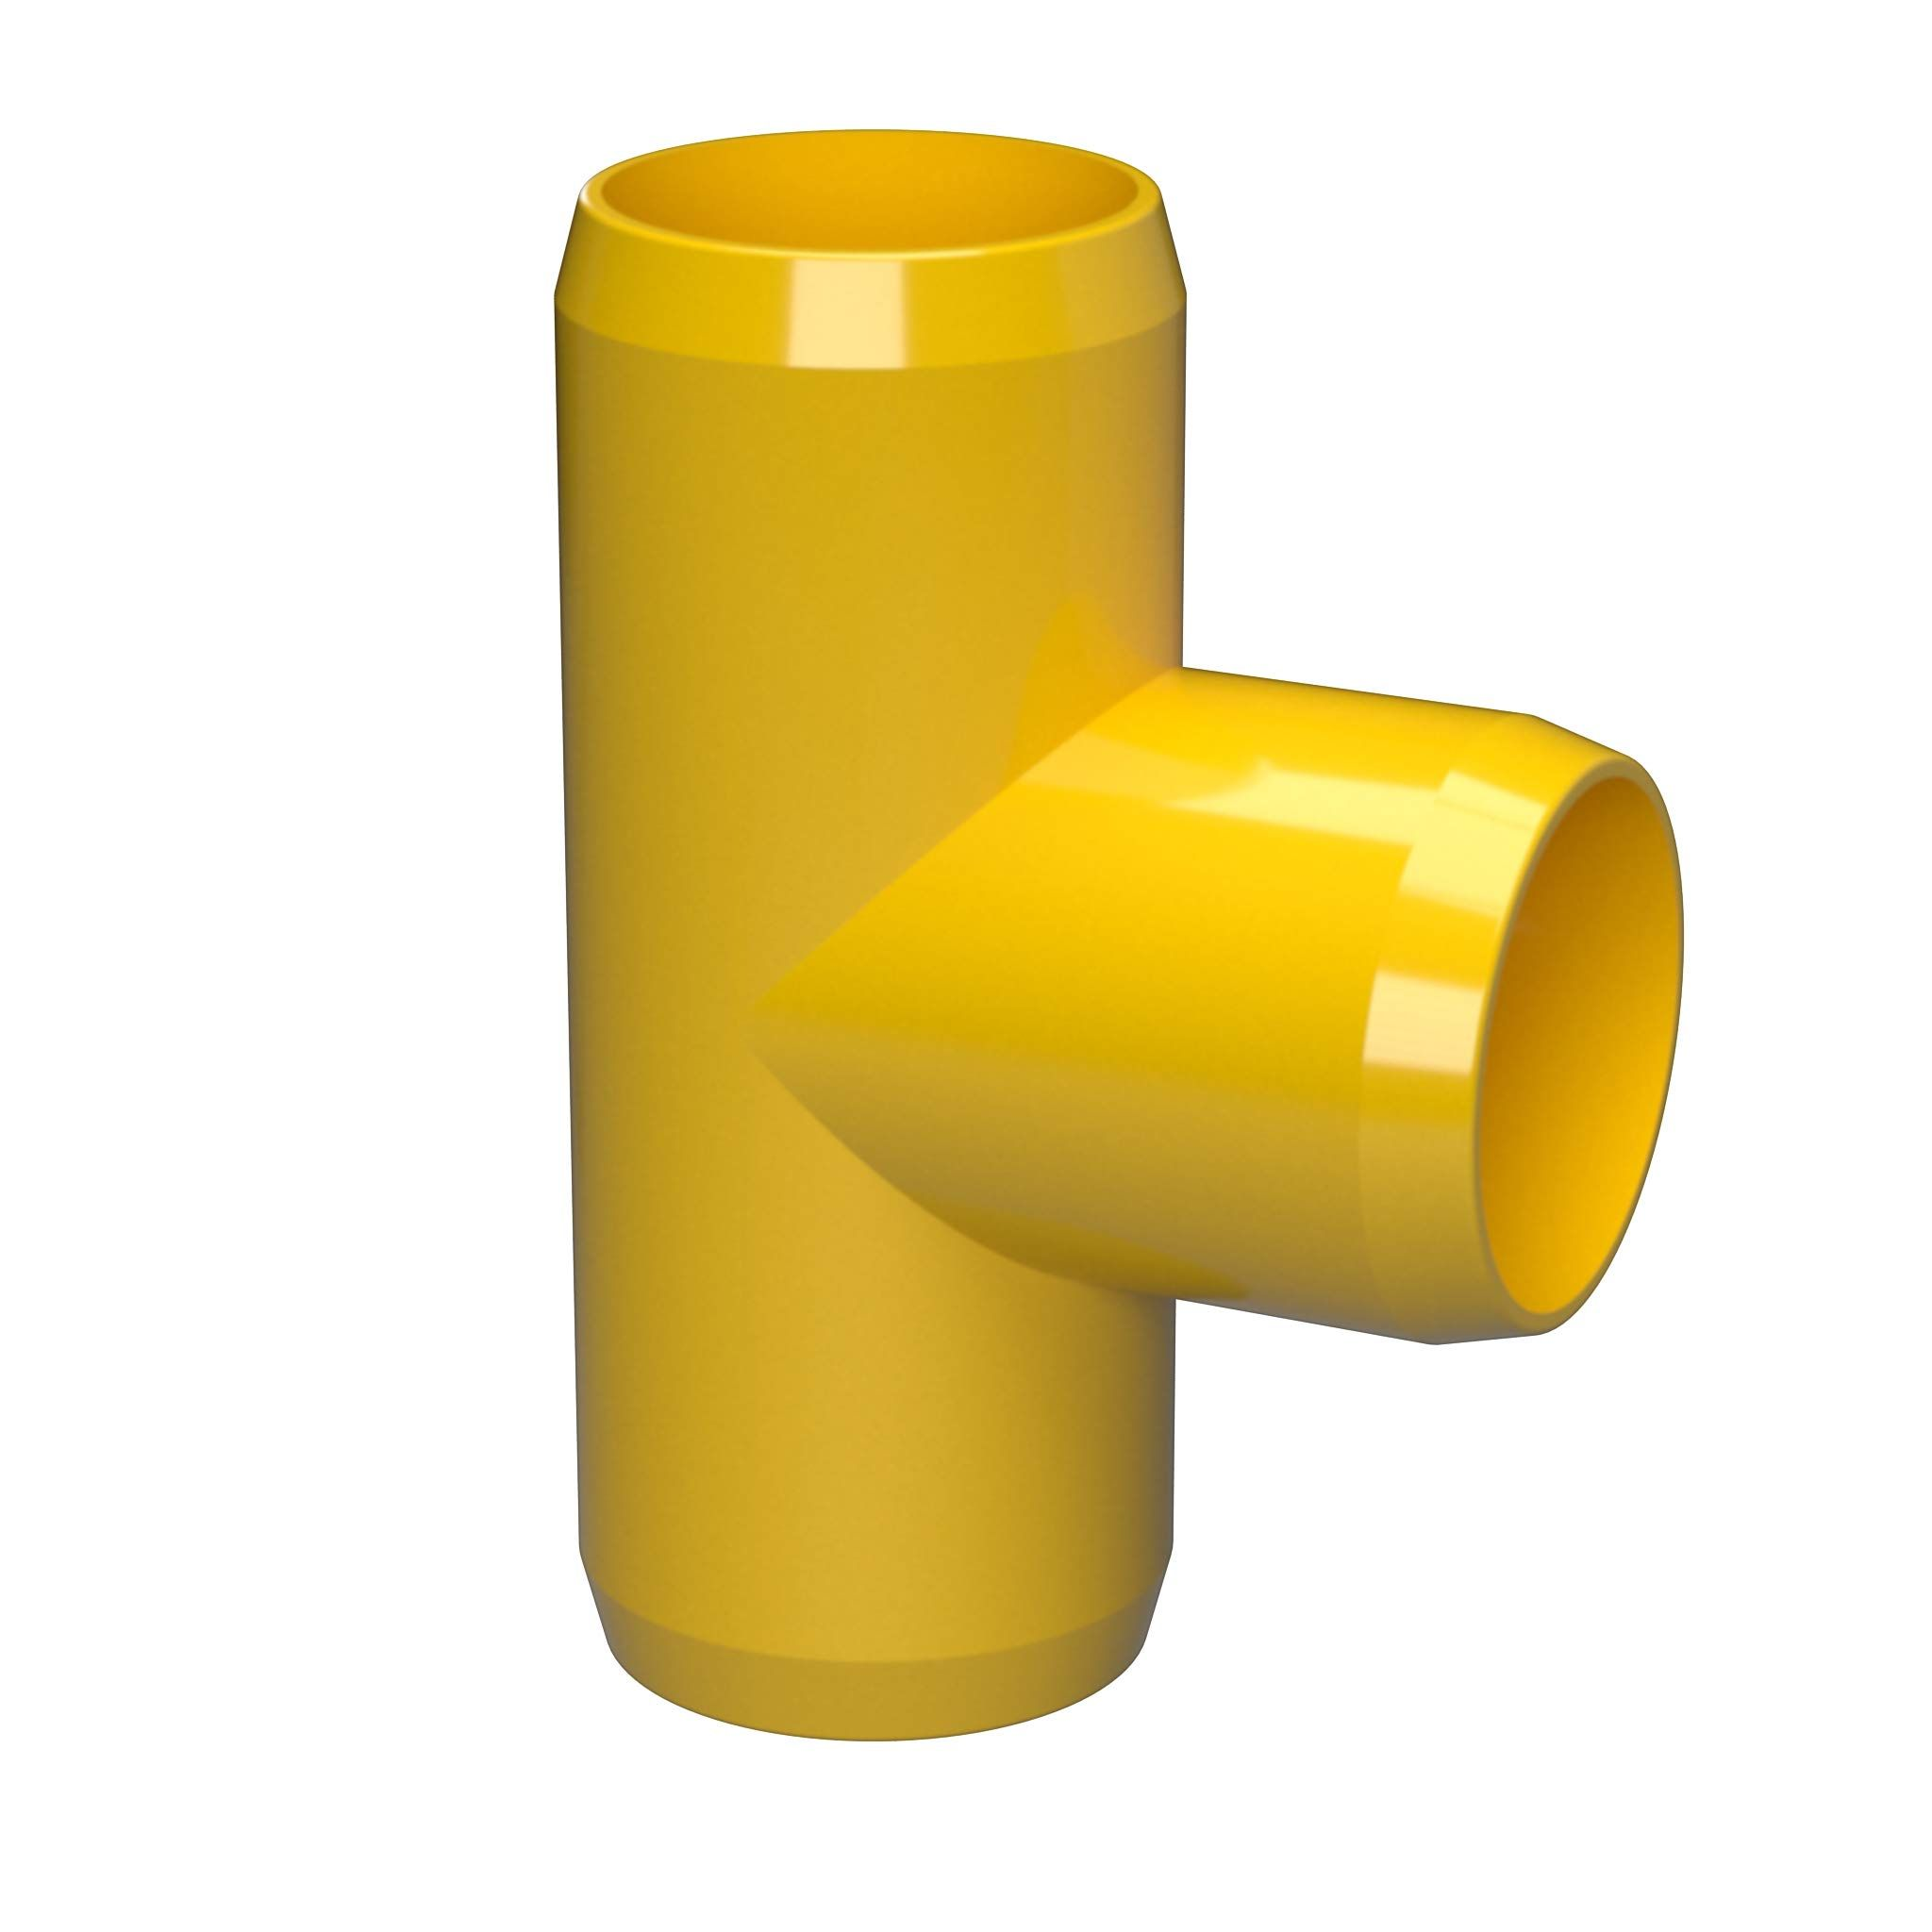 1 Size FORMUFIT F001TEE-YE-4 Tee PVC Fitting Furniture Grade Pack of 4 Yellow